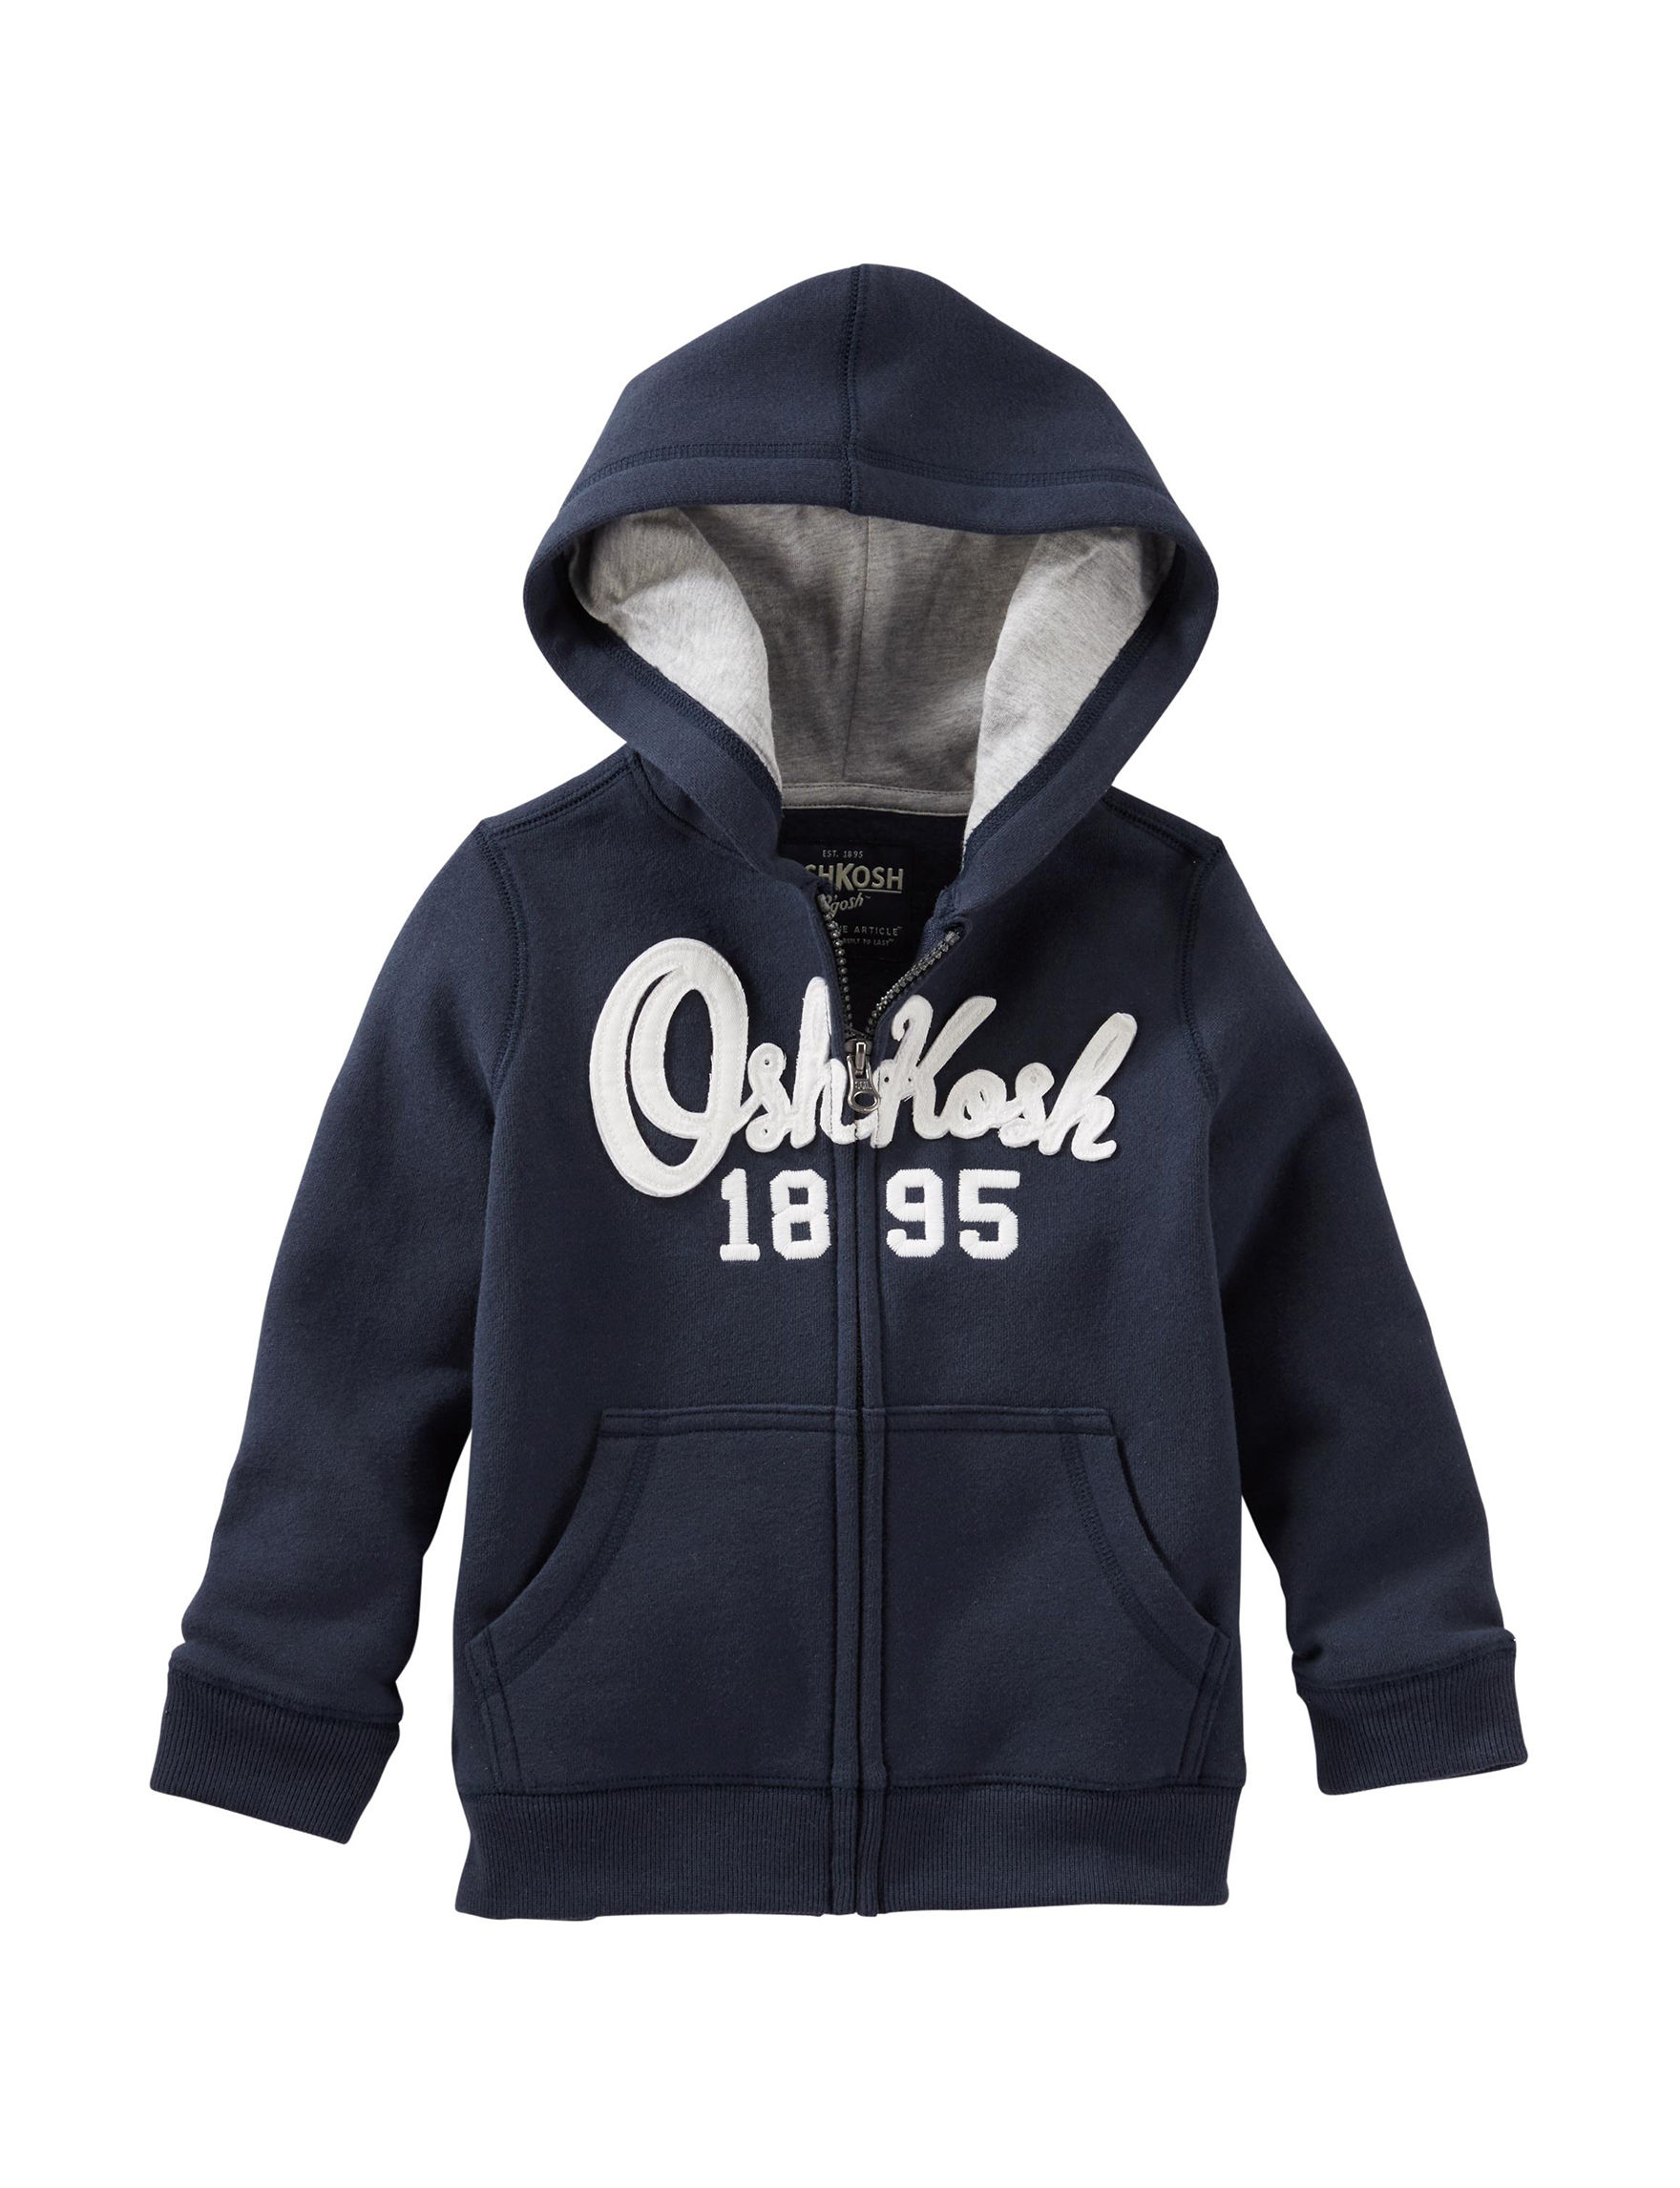 Oshkosh B'Gosh Navy Lightweight Jackets & Blazers